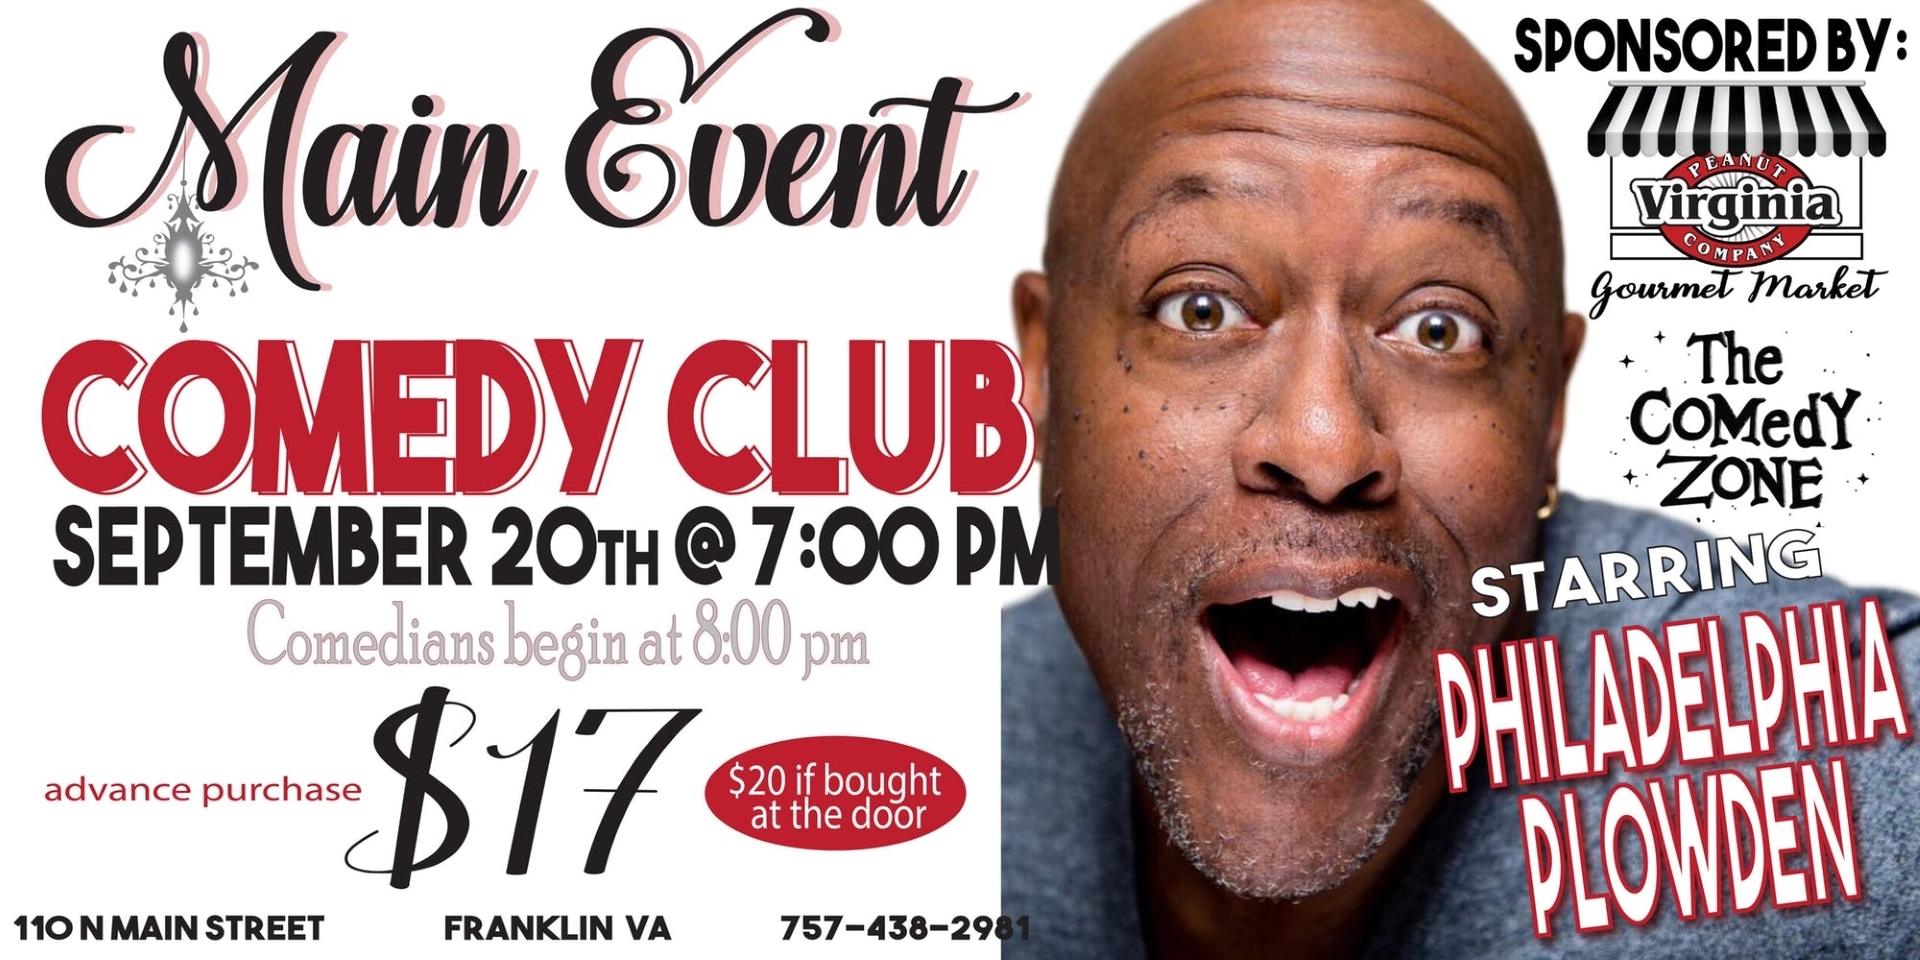 Main Event Comedy Club Starring Philadelphia Plowden